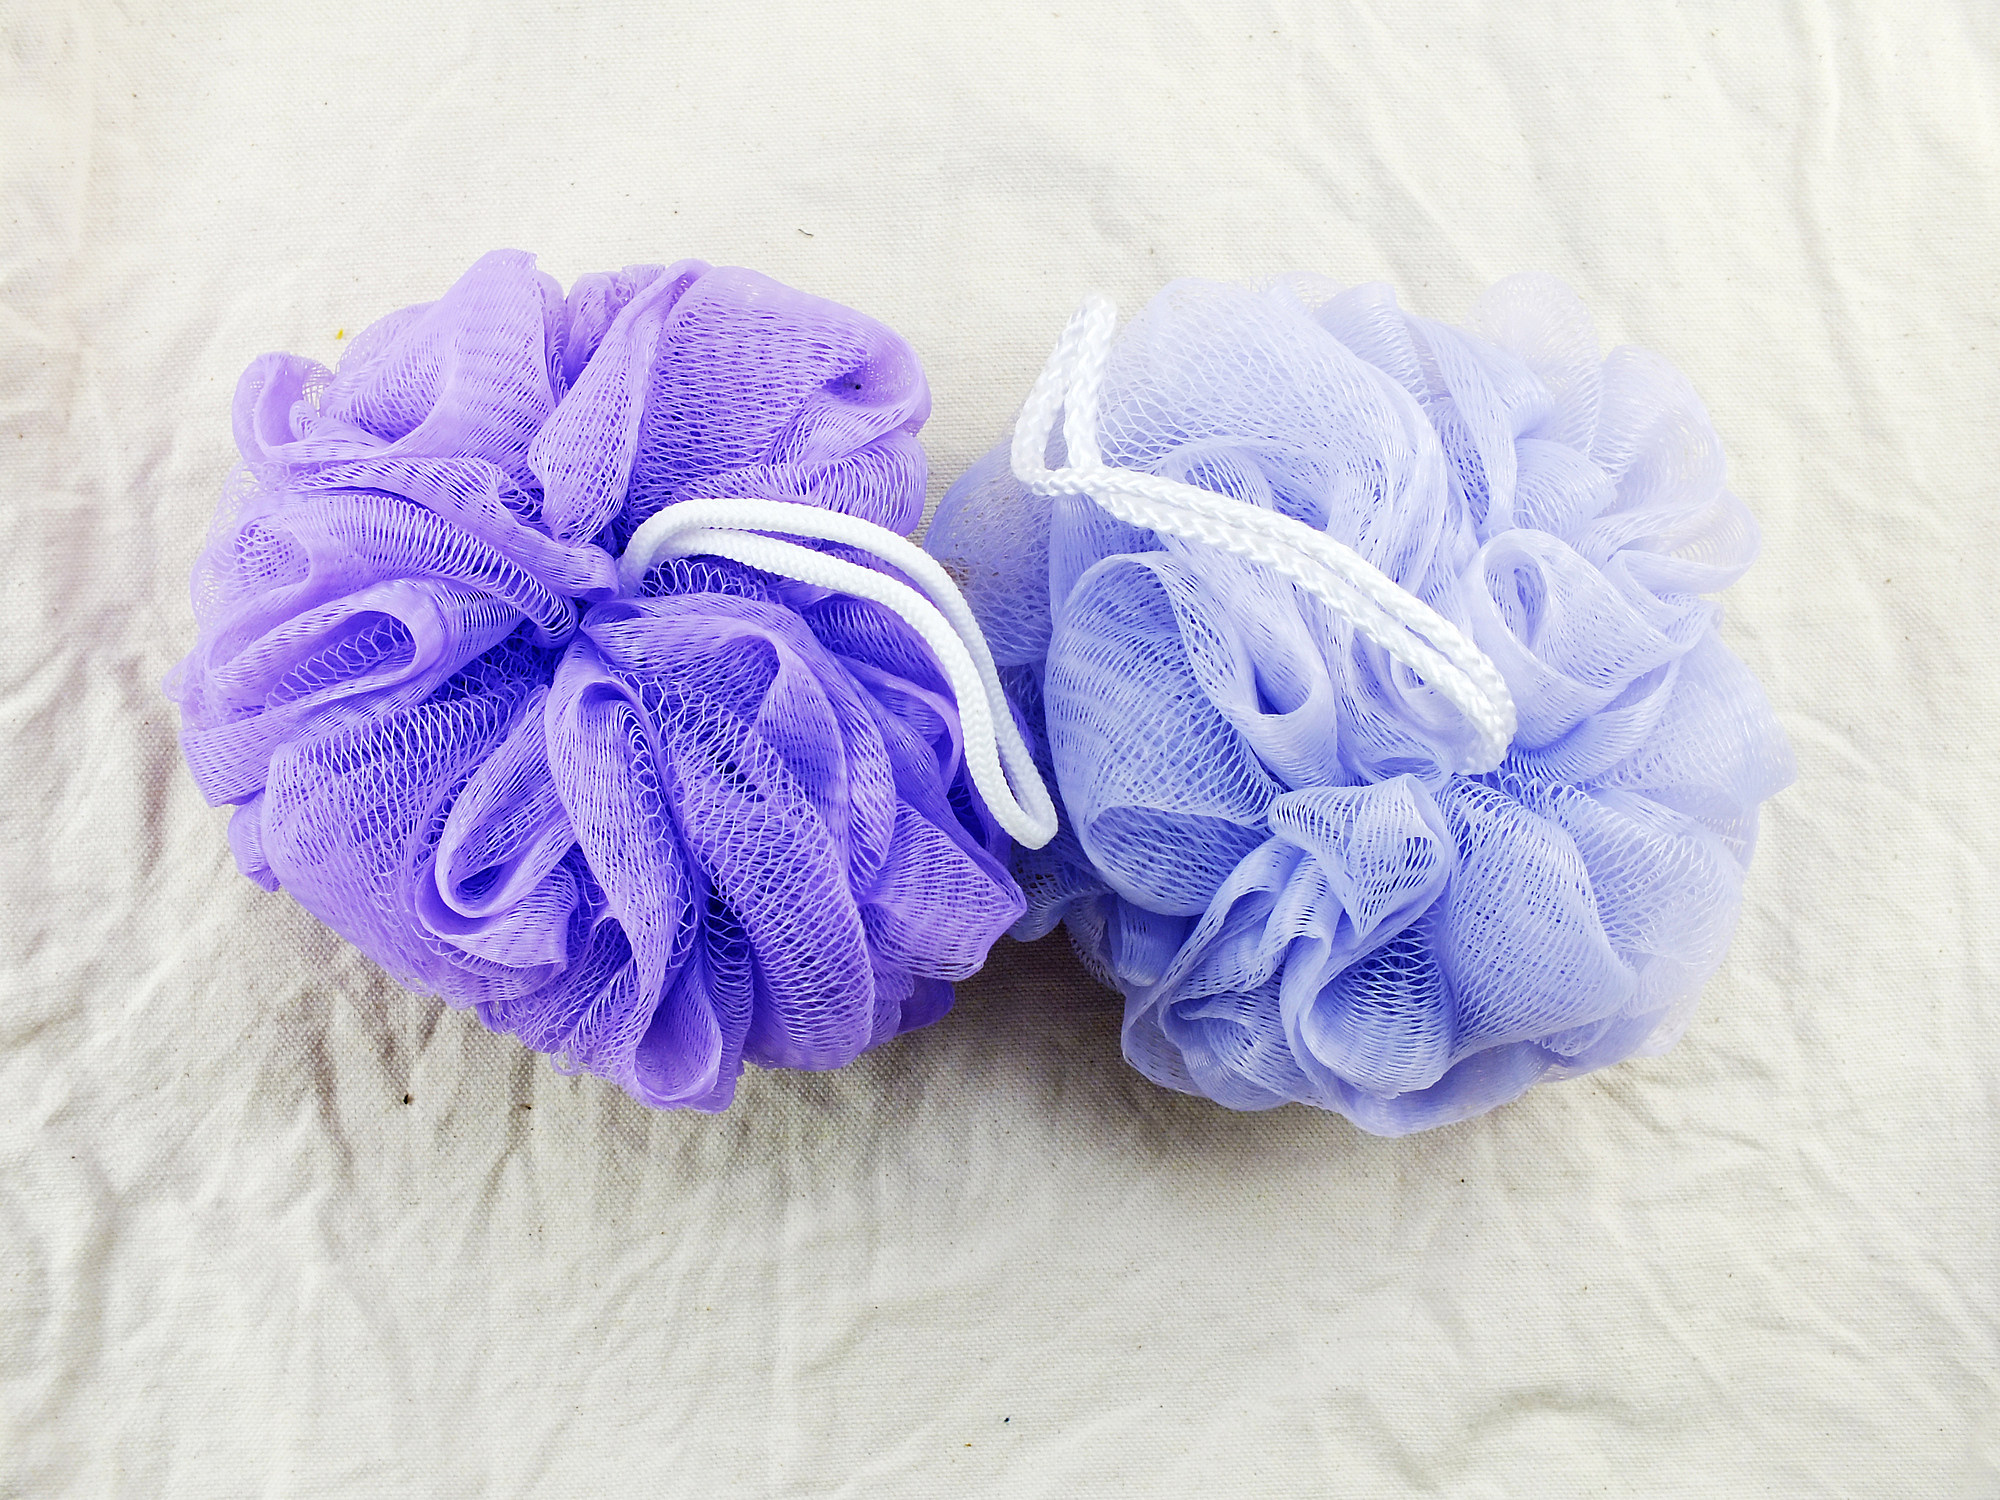 plastic bath puff and sponge for shower cleaning